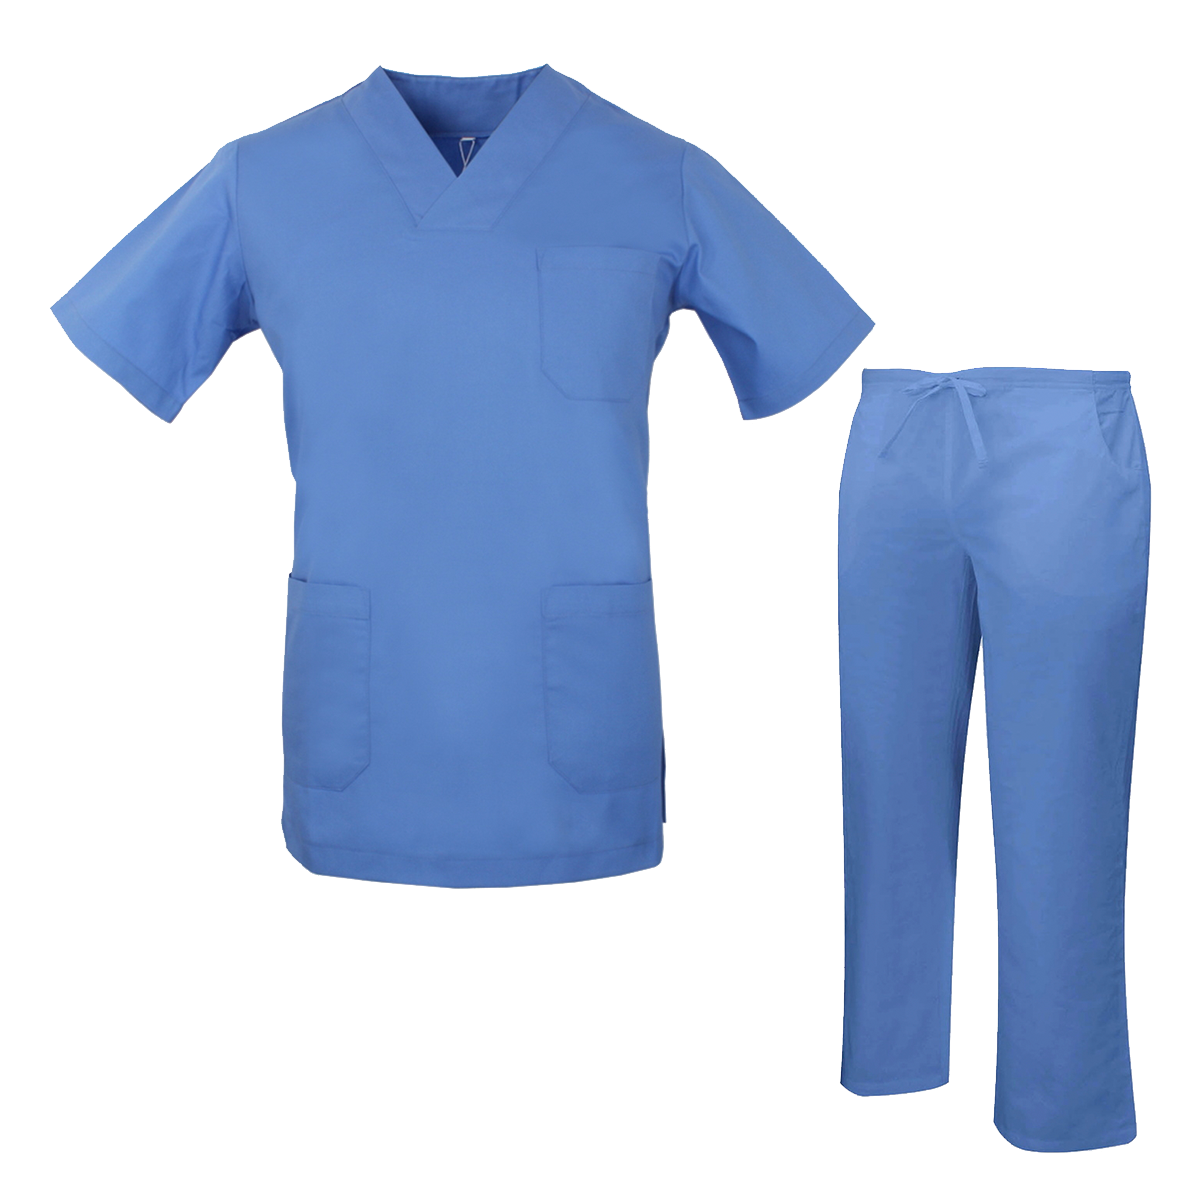 Scrub uniforms